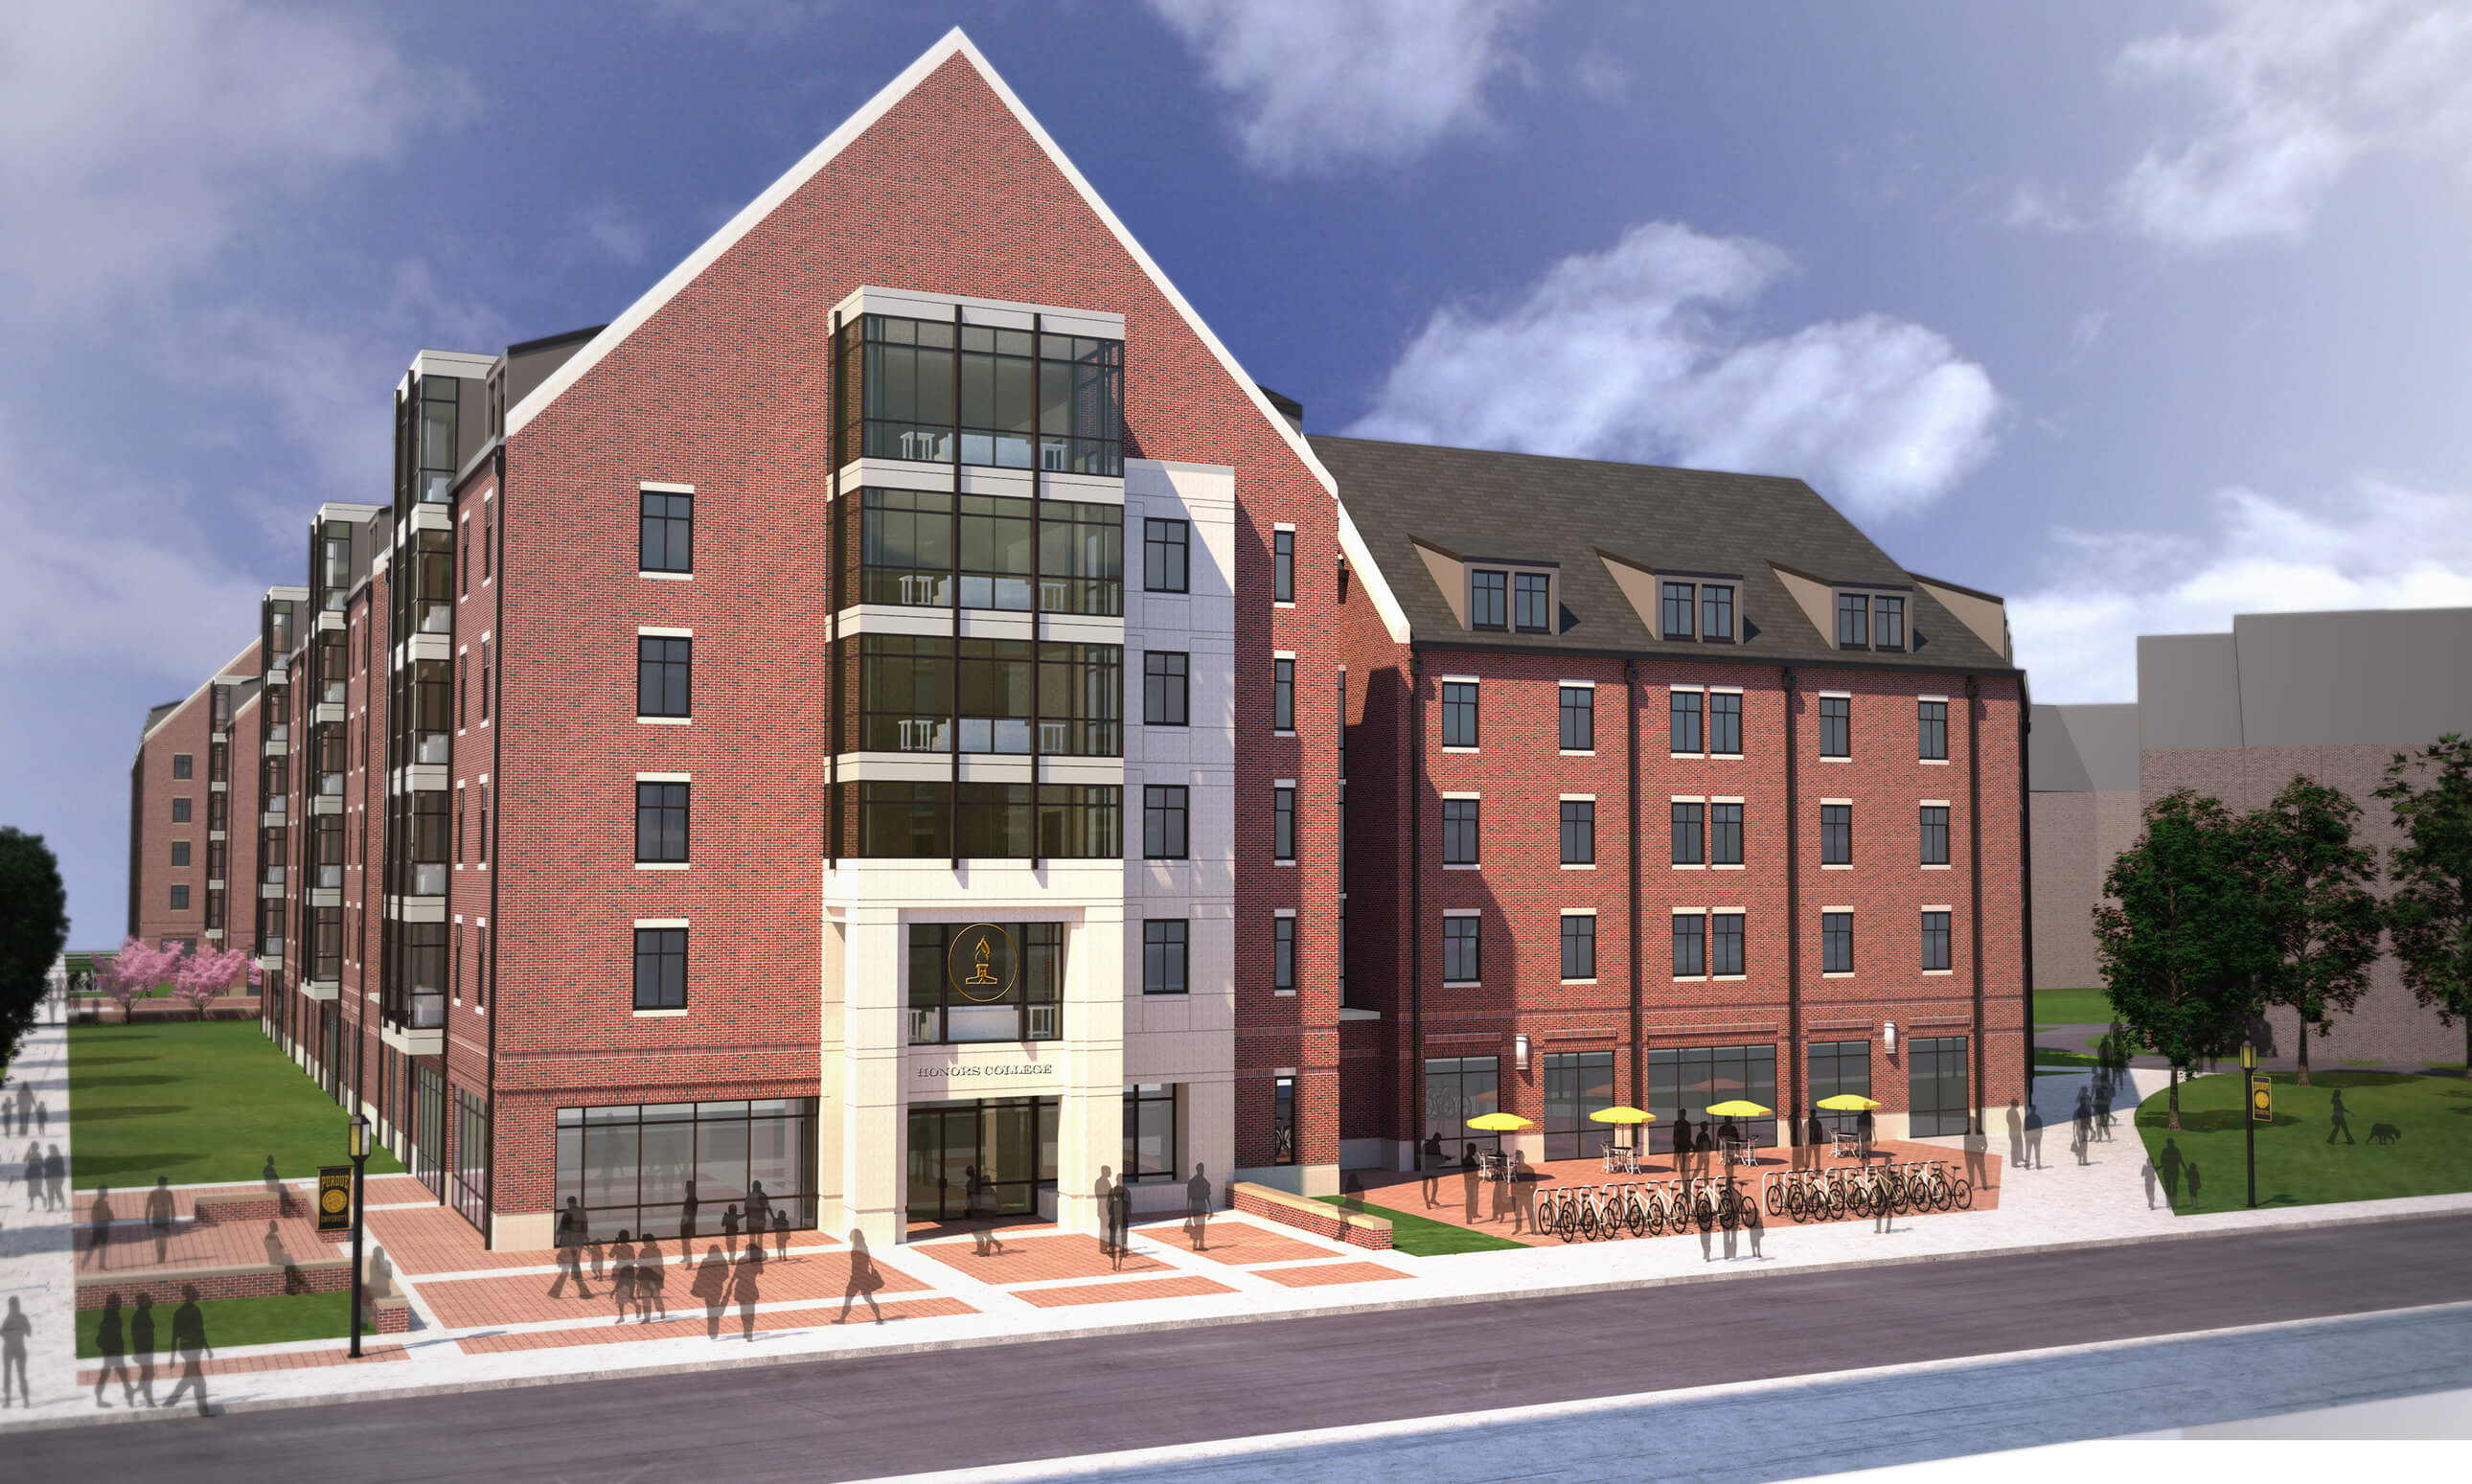 Honors College Rendering